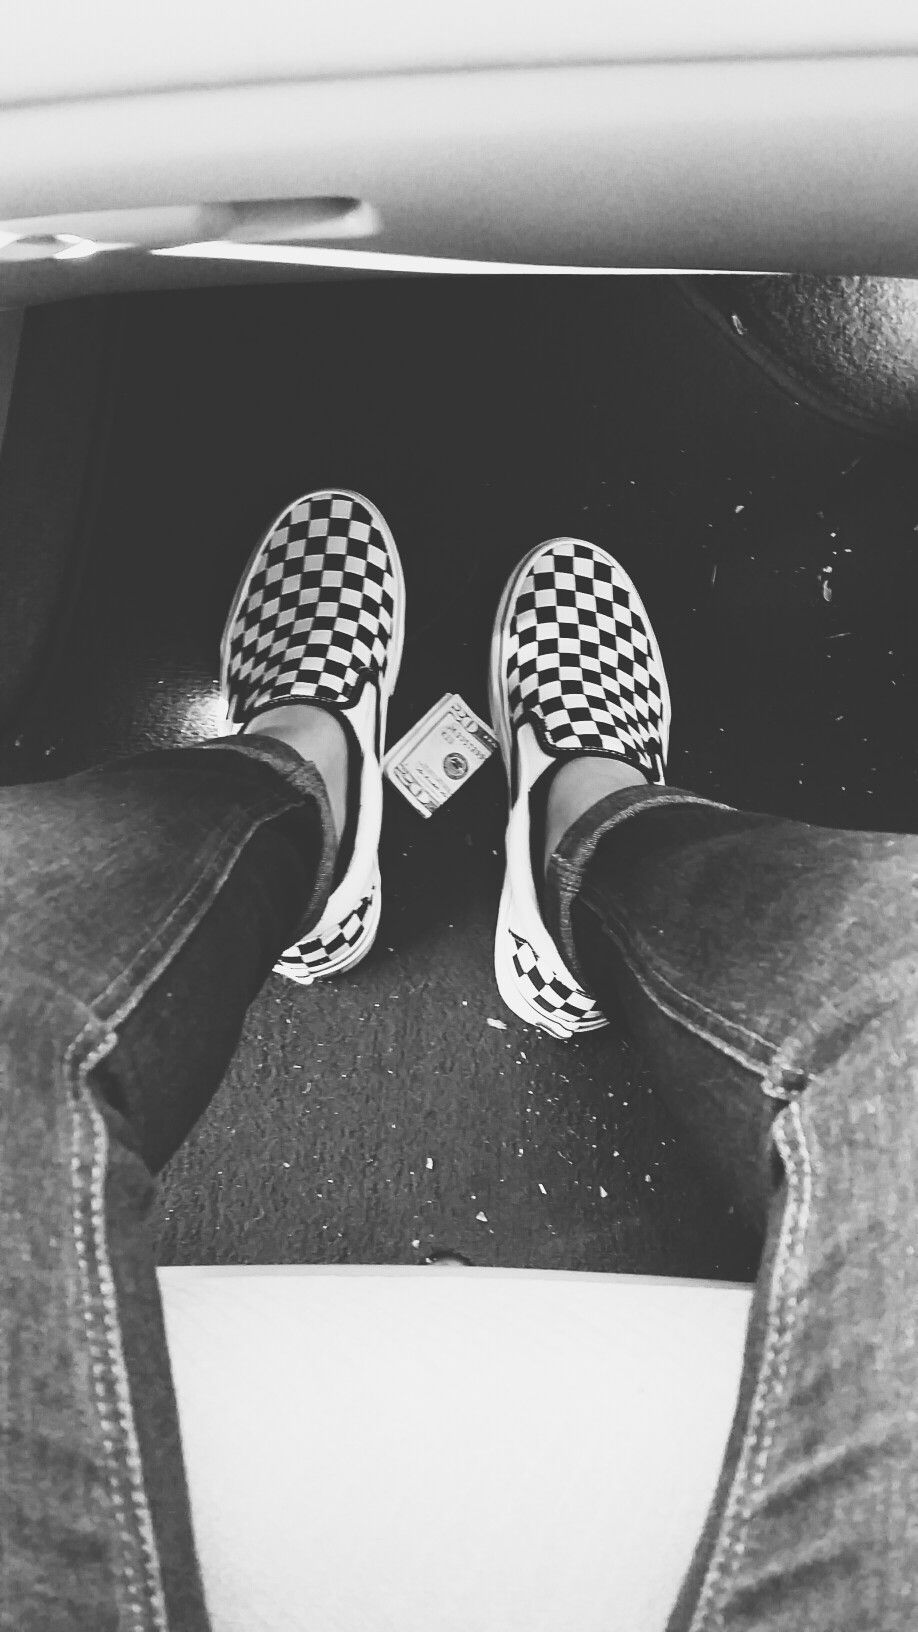 Checkered Vans Aesthetic With Images Checkered Shoes Vans